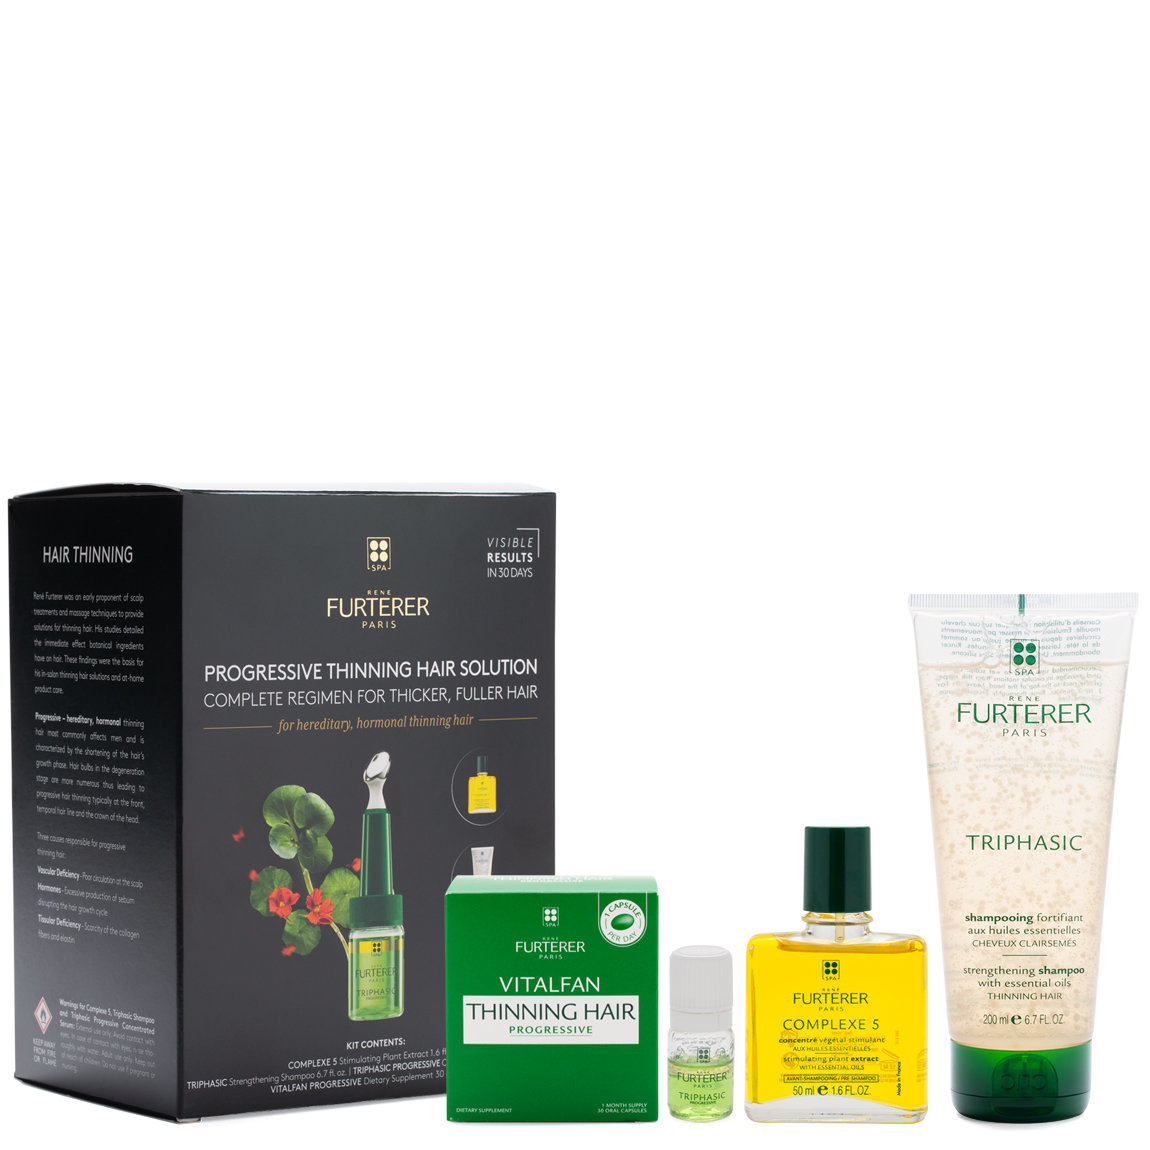 Rene Furterer Complete Thinning Hair Solution 4-Step Kit - For Hereditary and Hormonal Thinning Hair product smear.